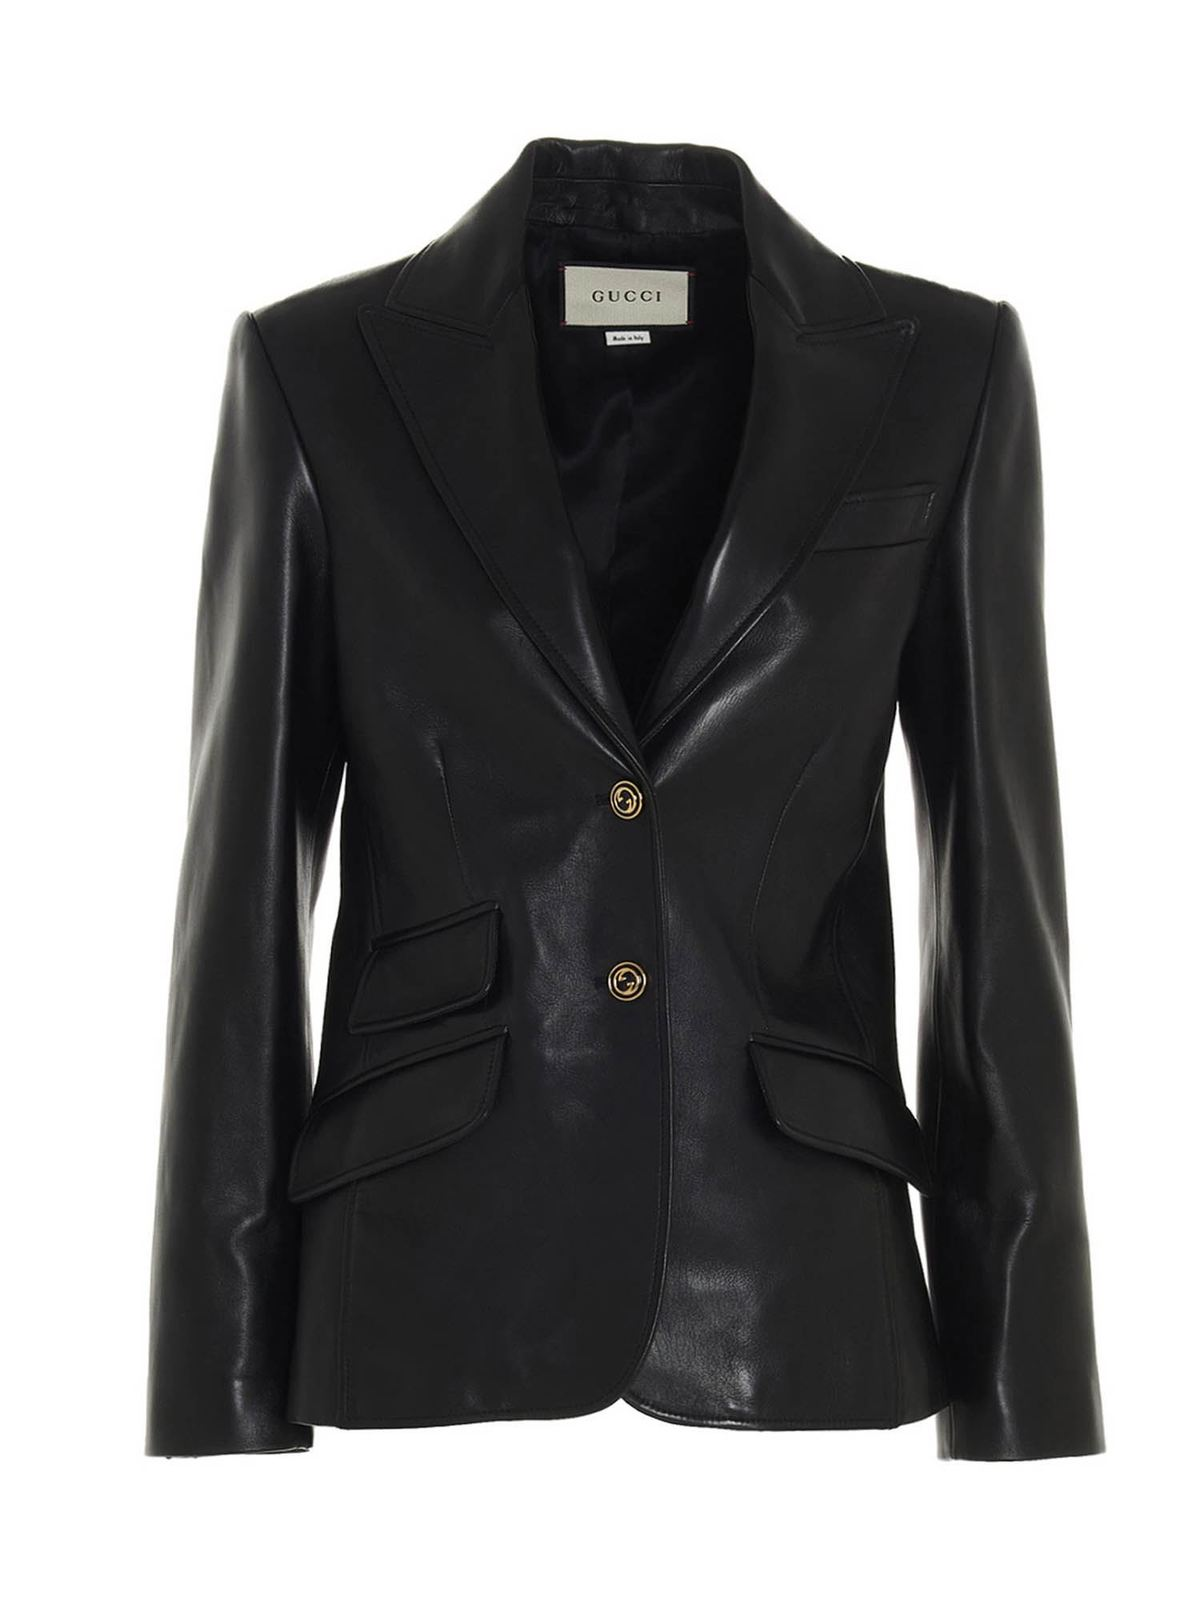 GUCCI PLONGE LEATHER BLAZER IN BLACK